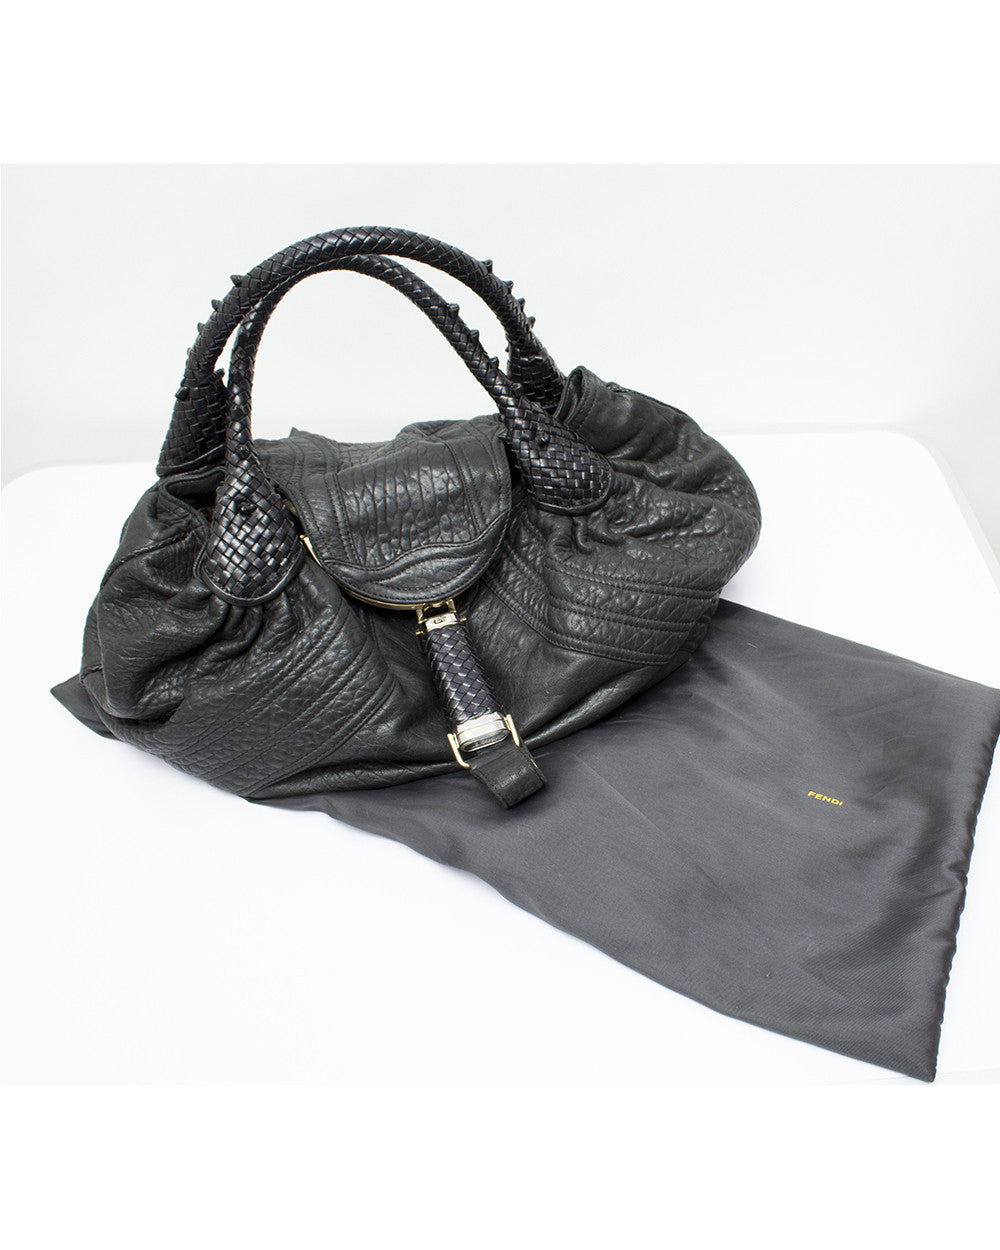 Black Spy Bag